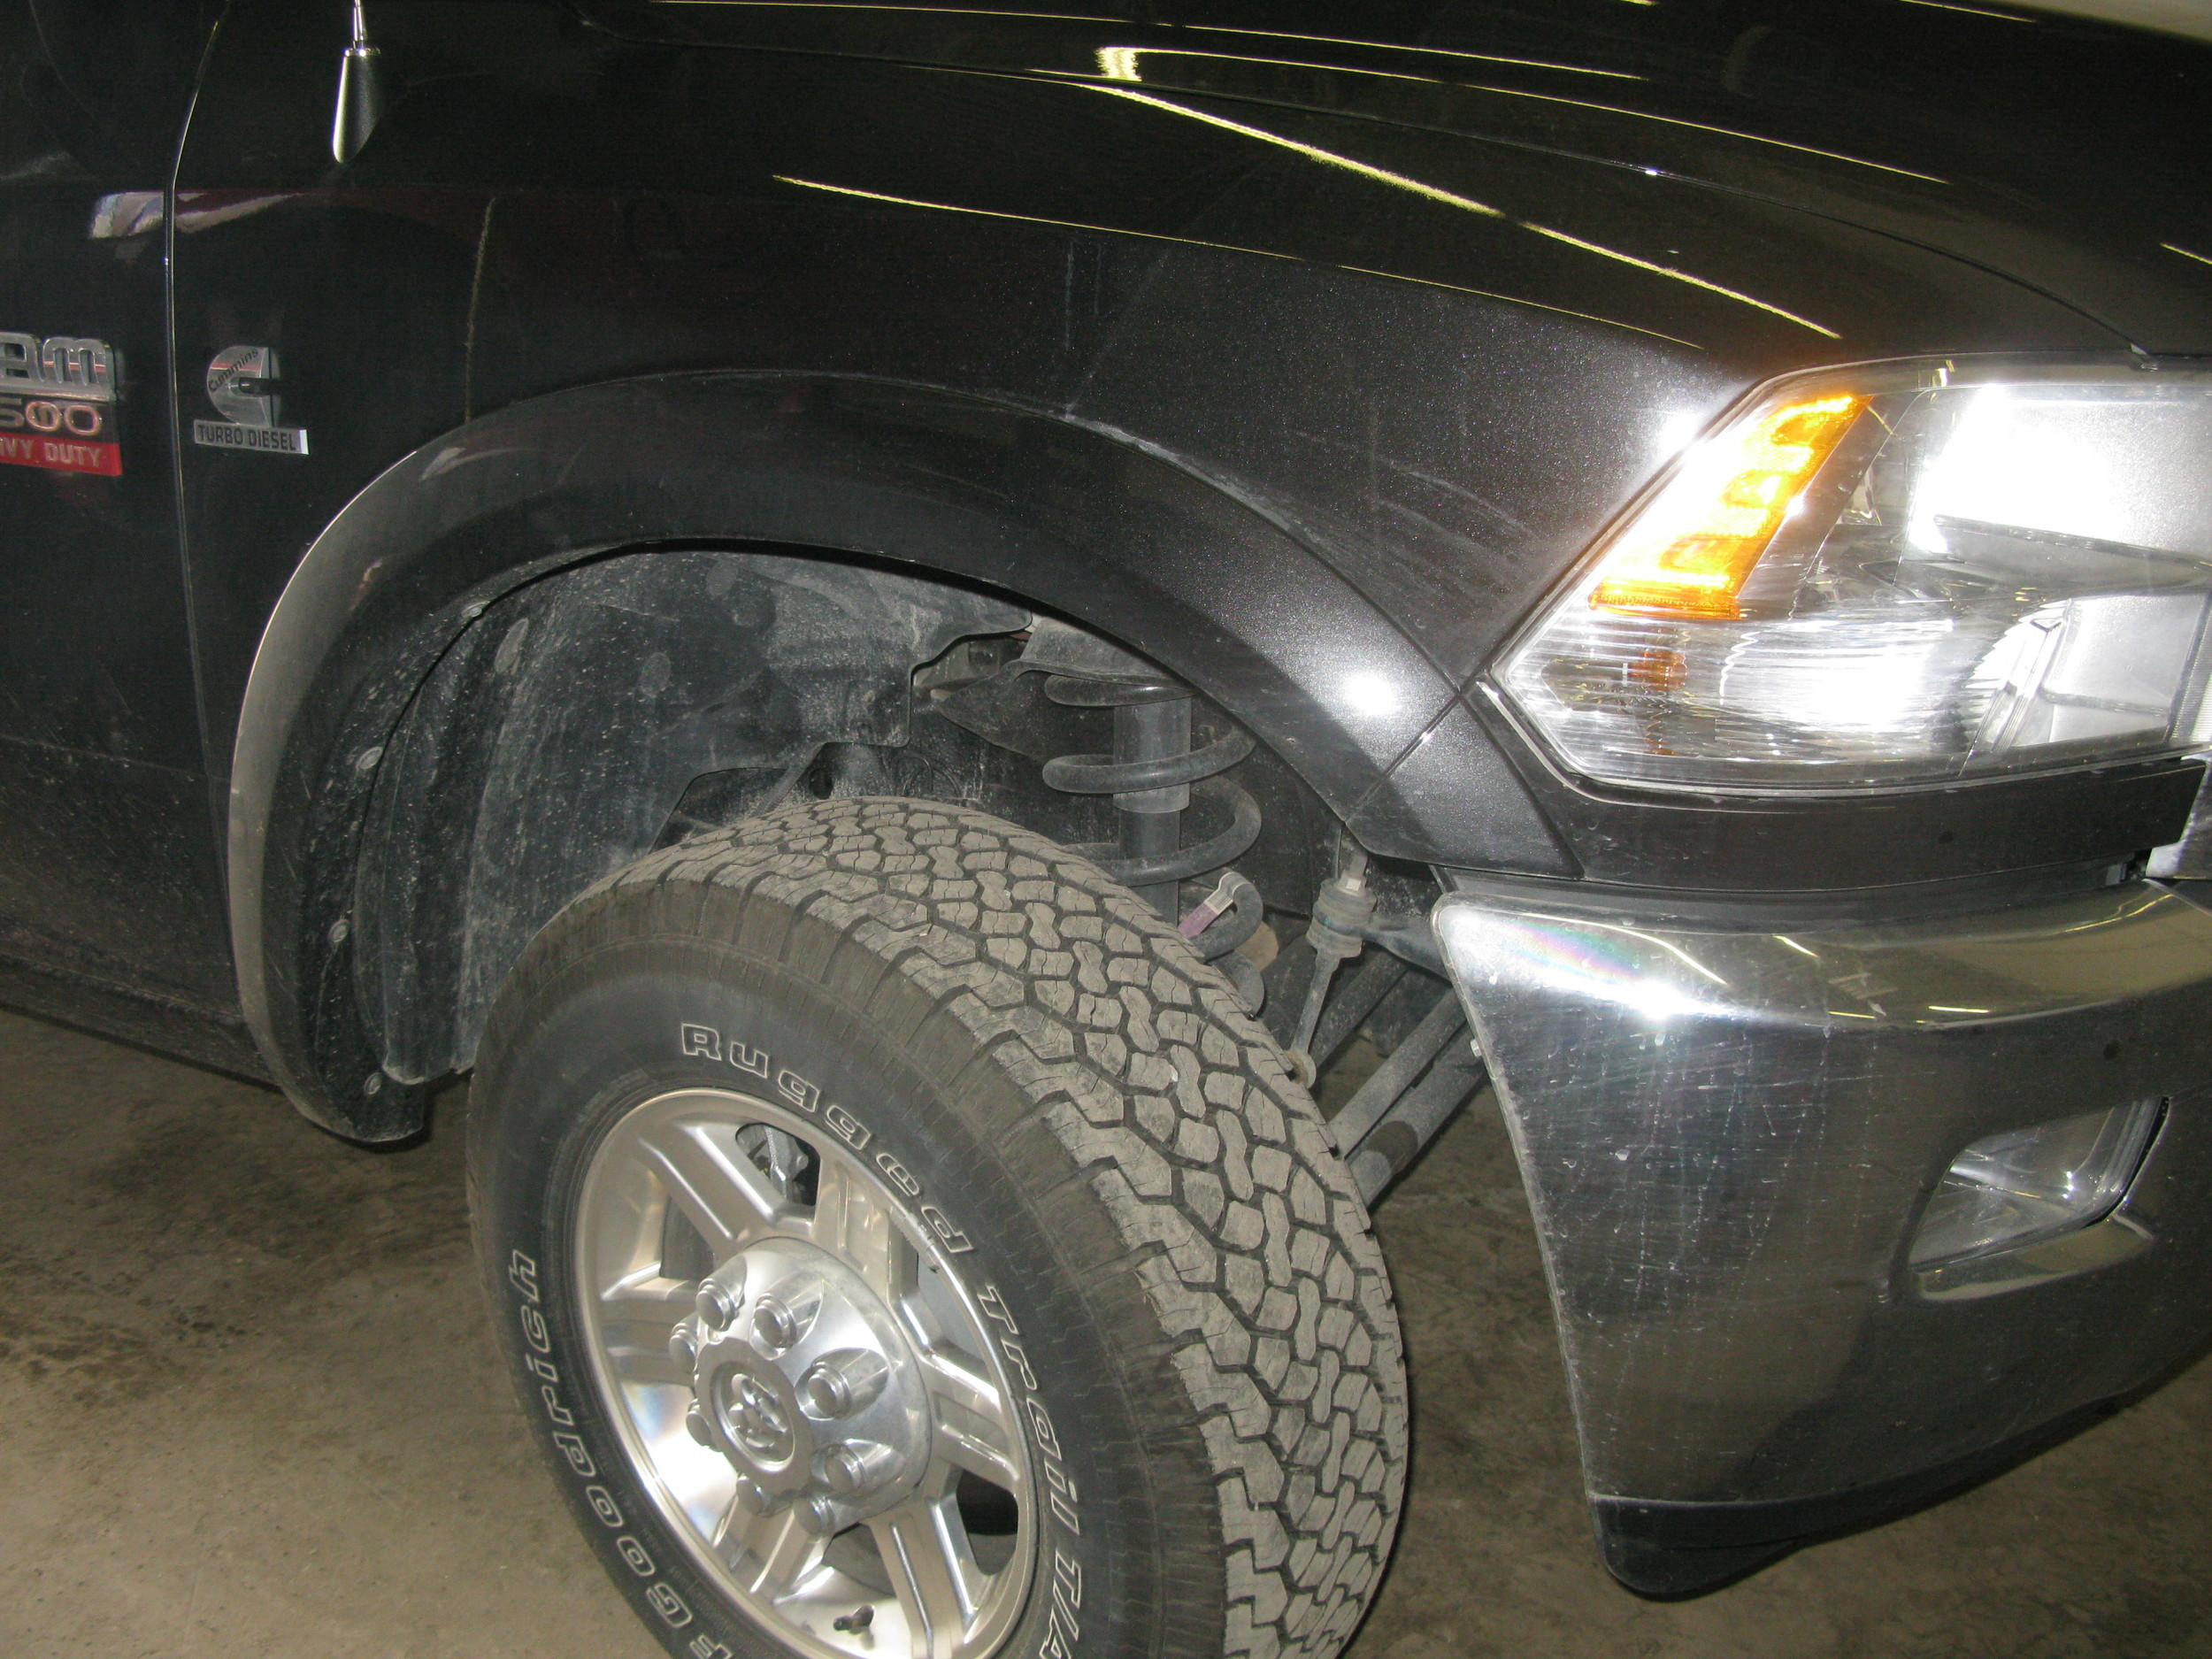 Stock flares, to be replaced with Bushwacker pocket flares